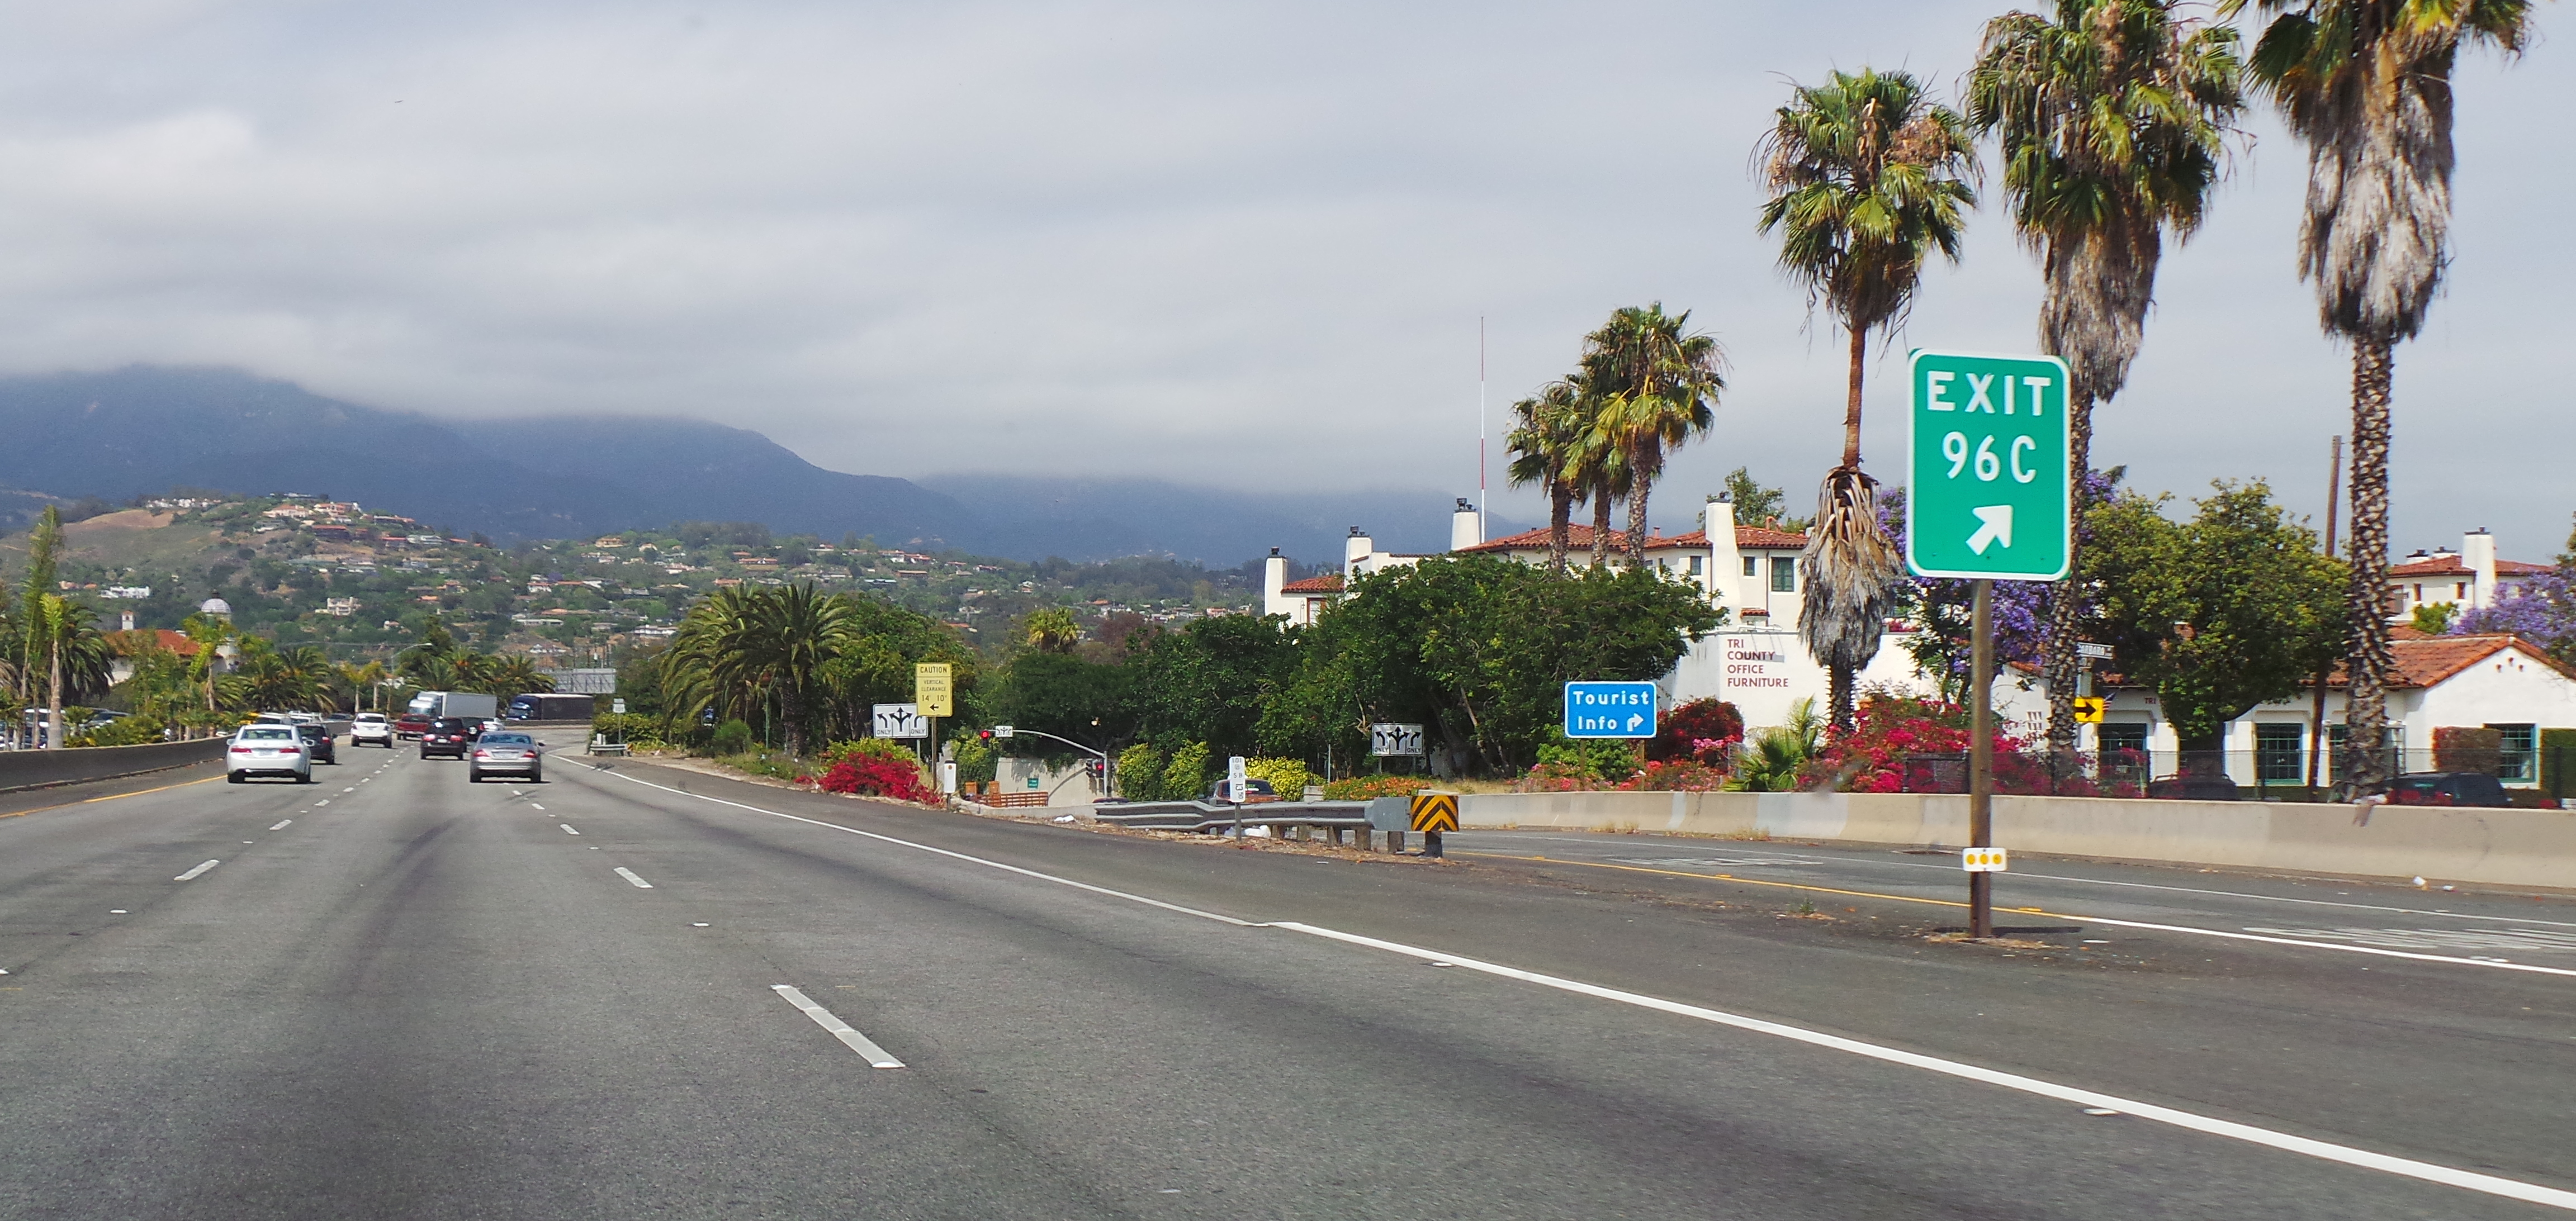 Santa Barbara Towards Ojai Visitor Center